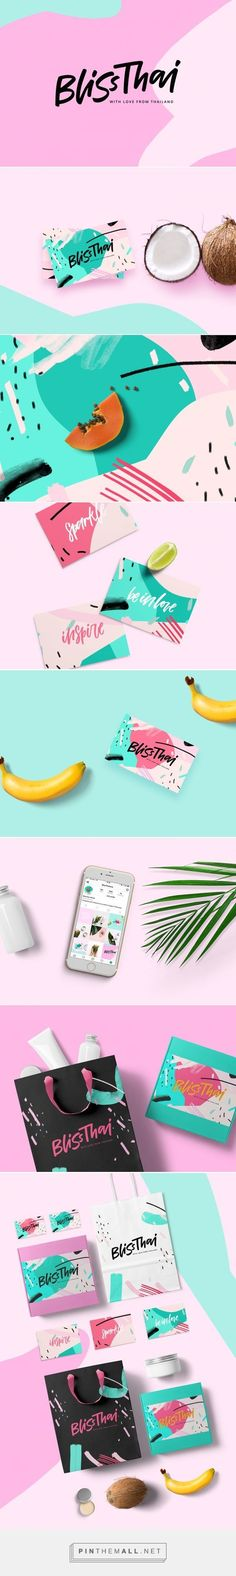 Bliss Thai Online Shop Branding by Daria Kwon / Branding / Brand / Design / Colorful / Food / Thai / Fruit / Organic / Natural / Nature / Tropical / 80's Aesthetic / 80's Pattern / Fun / Ludic